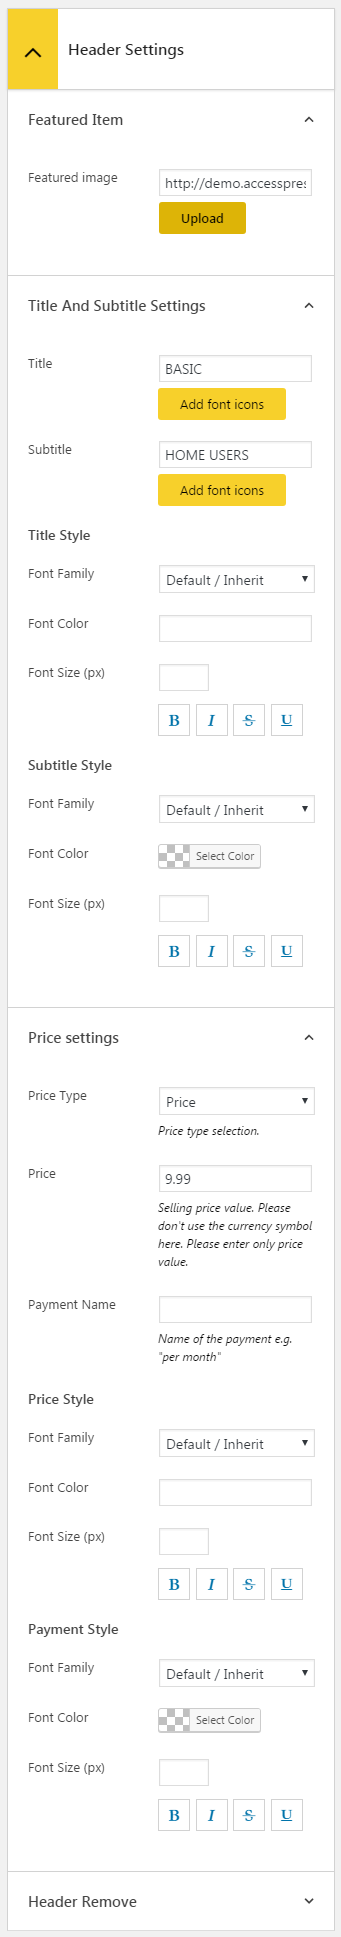 AP Pricing Tables Lite - Column Header settings